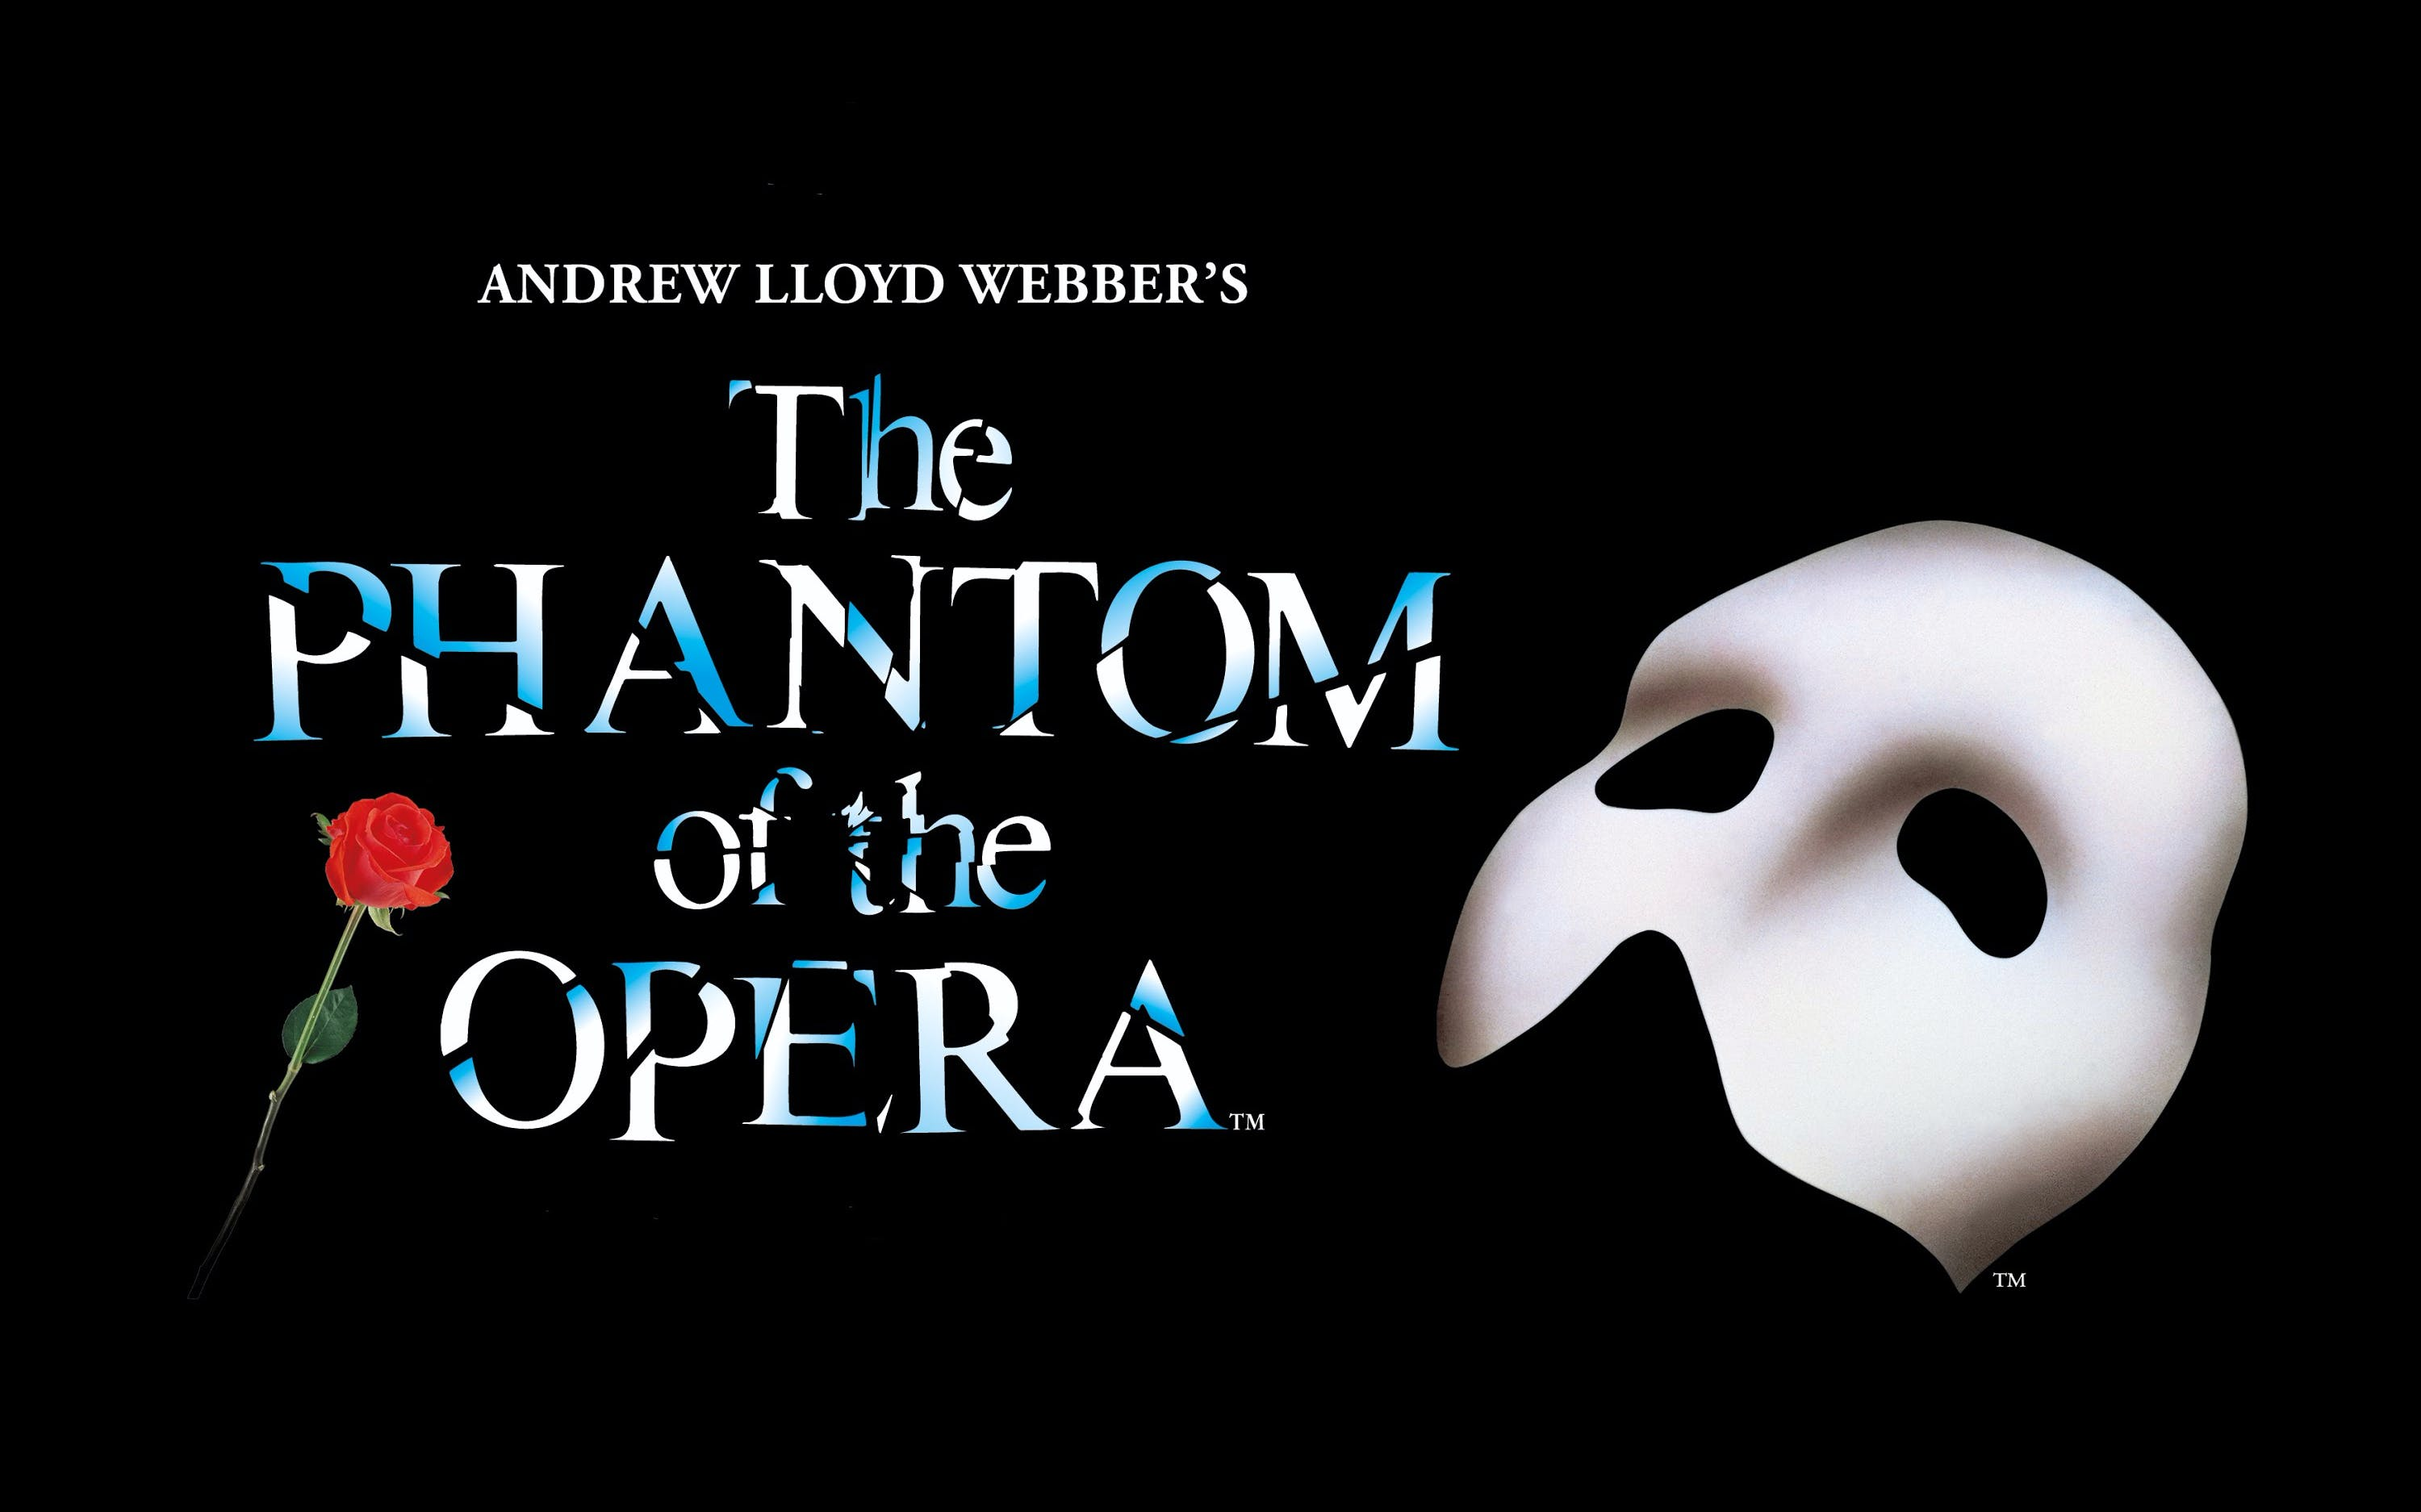 The Phantom Of the opera tickets 1